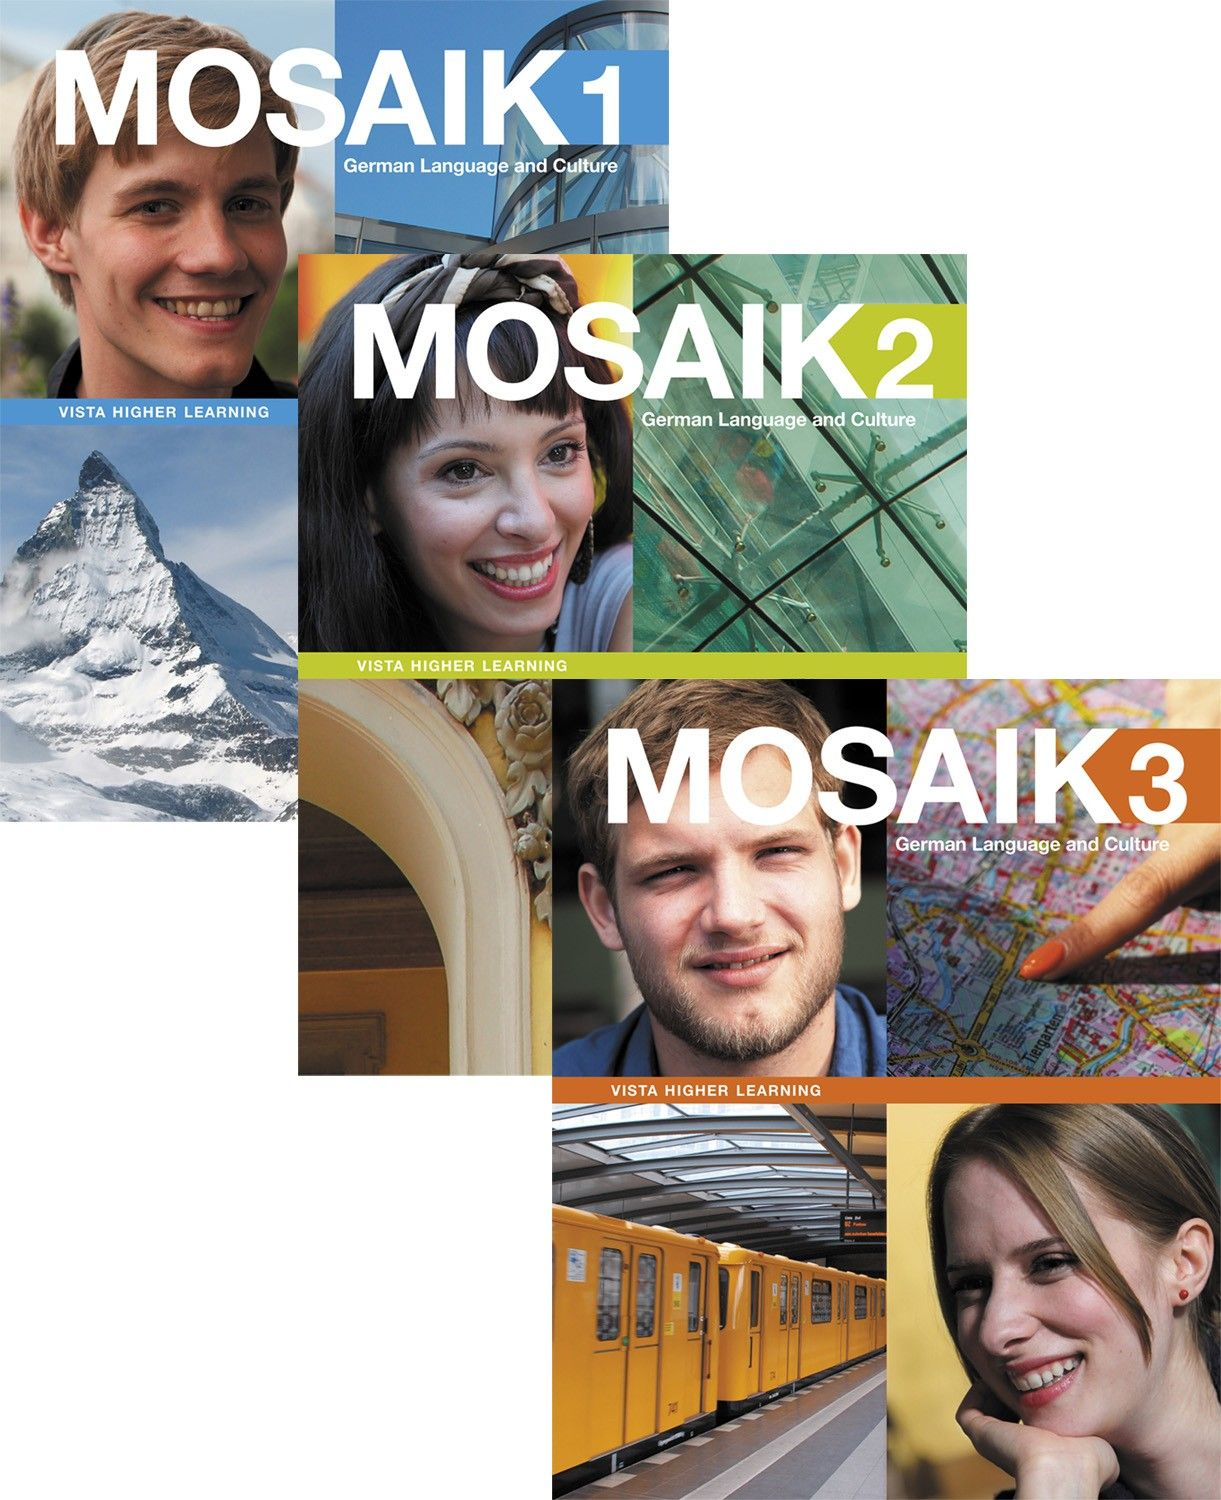 Mosaik German Textbooks Amp Required Codes